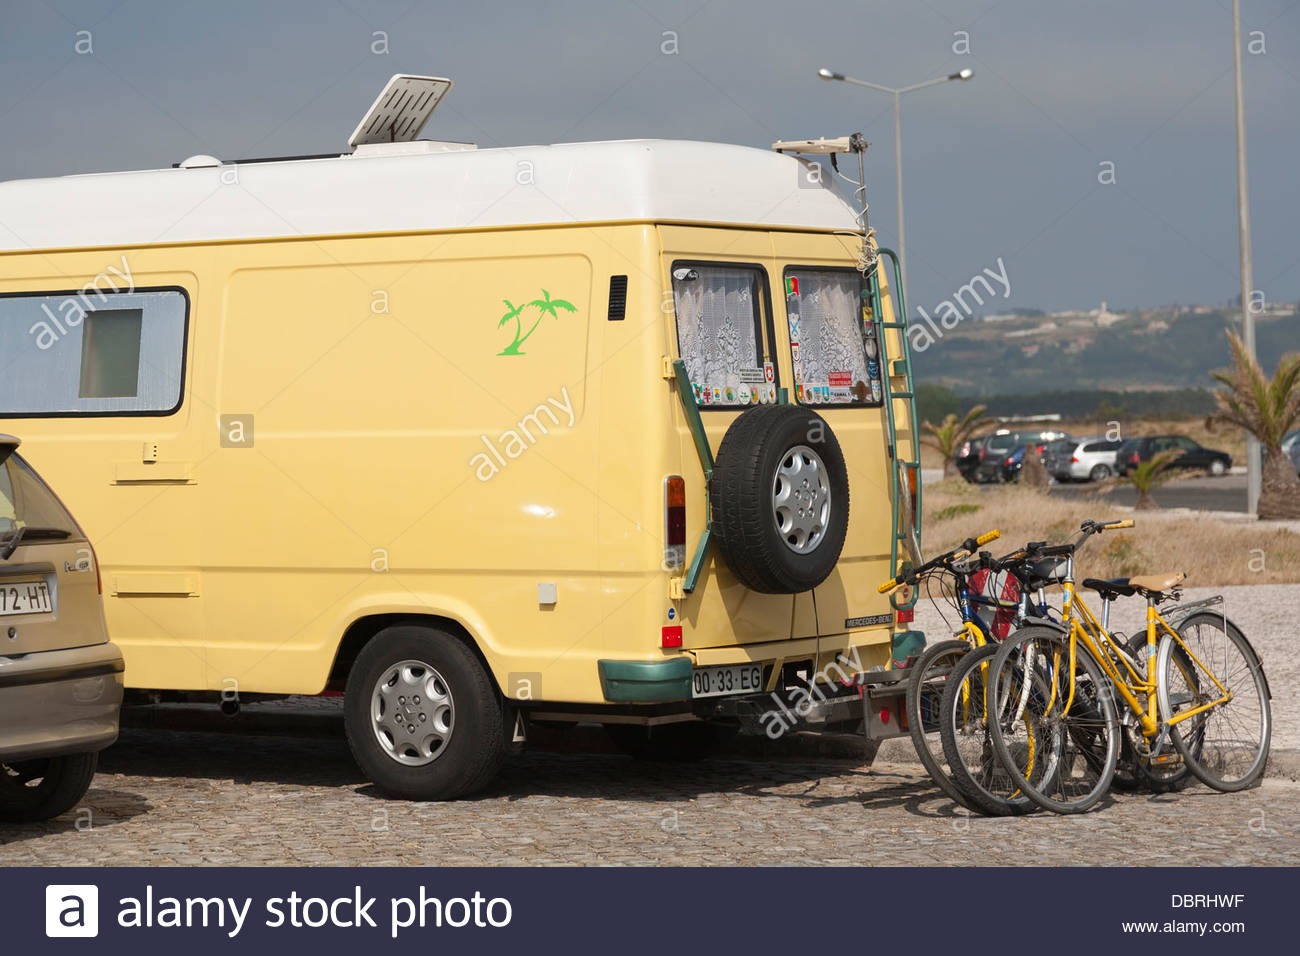 A small campervan parked and free camping in Sao Martinho do Porto Portugal - Stock Image